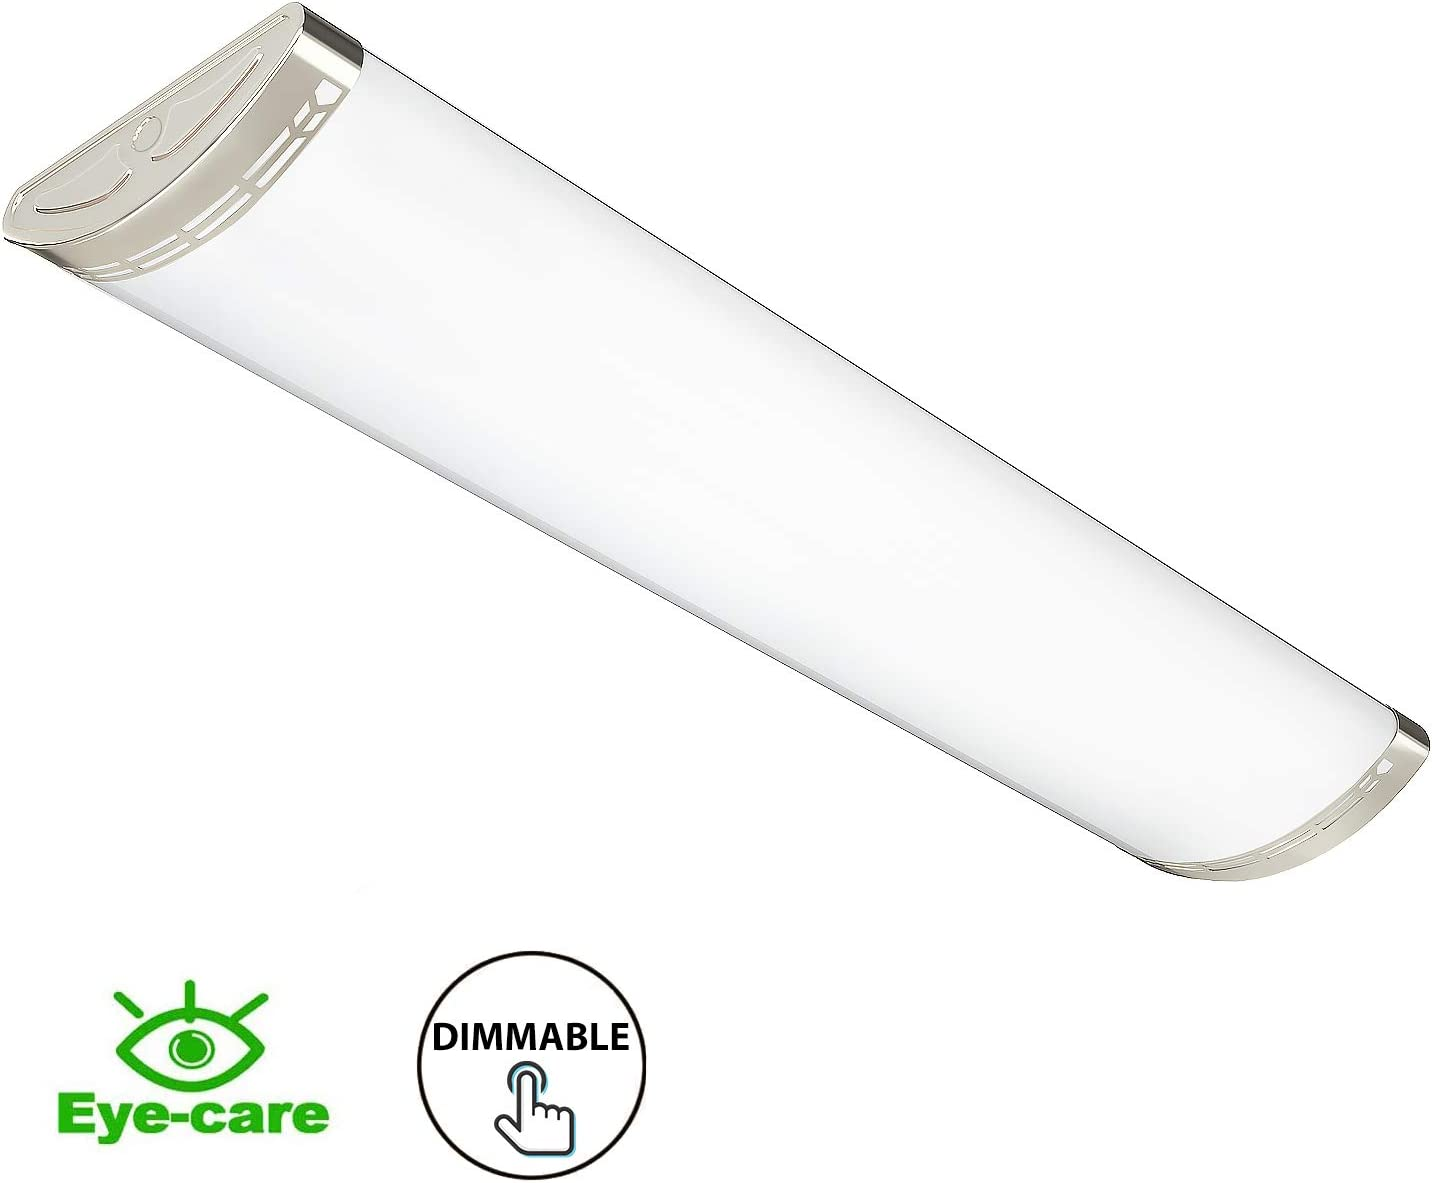 Replace for Fluorescent Version 4000K Warm White FaithSail 4FT LED Light Fixture Dimmable 80W 8800lm Kitchen Lighting Flush Mount 4 Foot LED Light Fixtures Ceiling for Craft Room Laundry